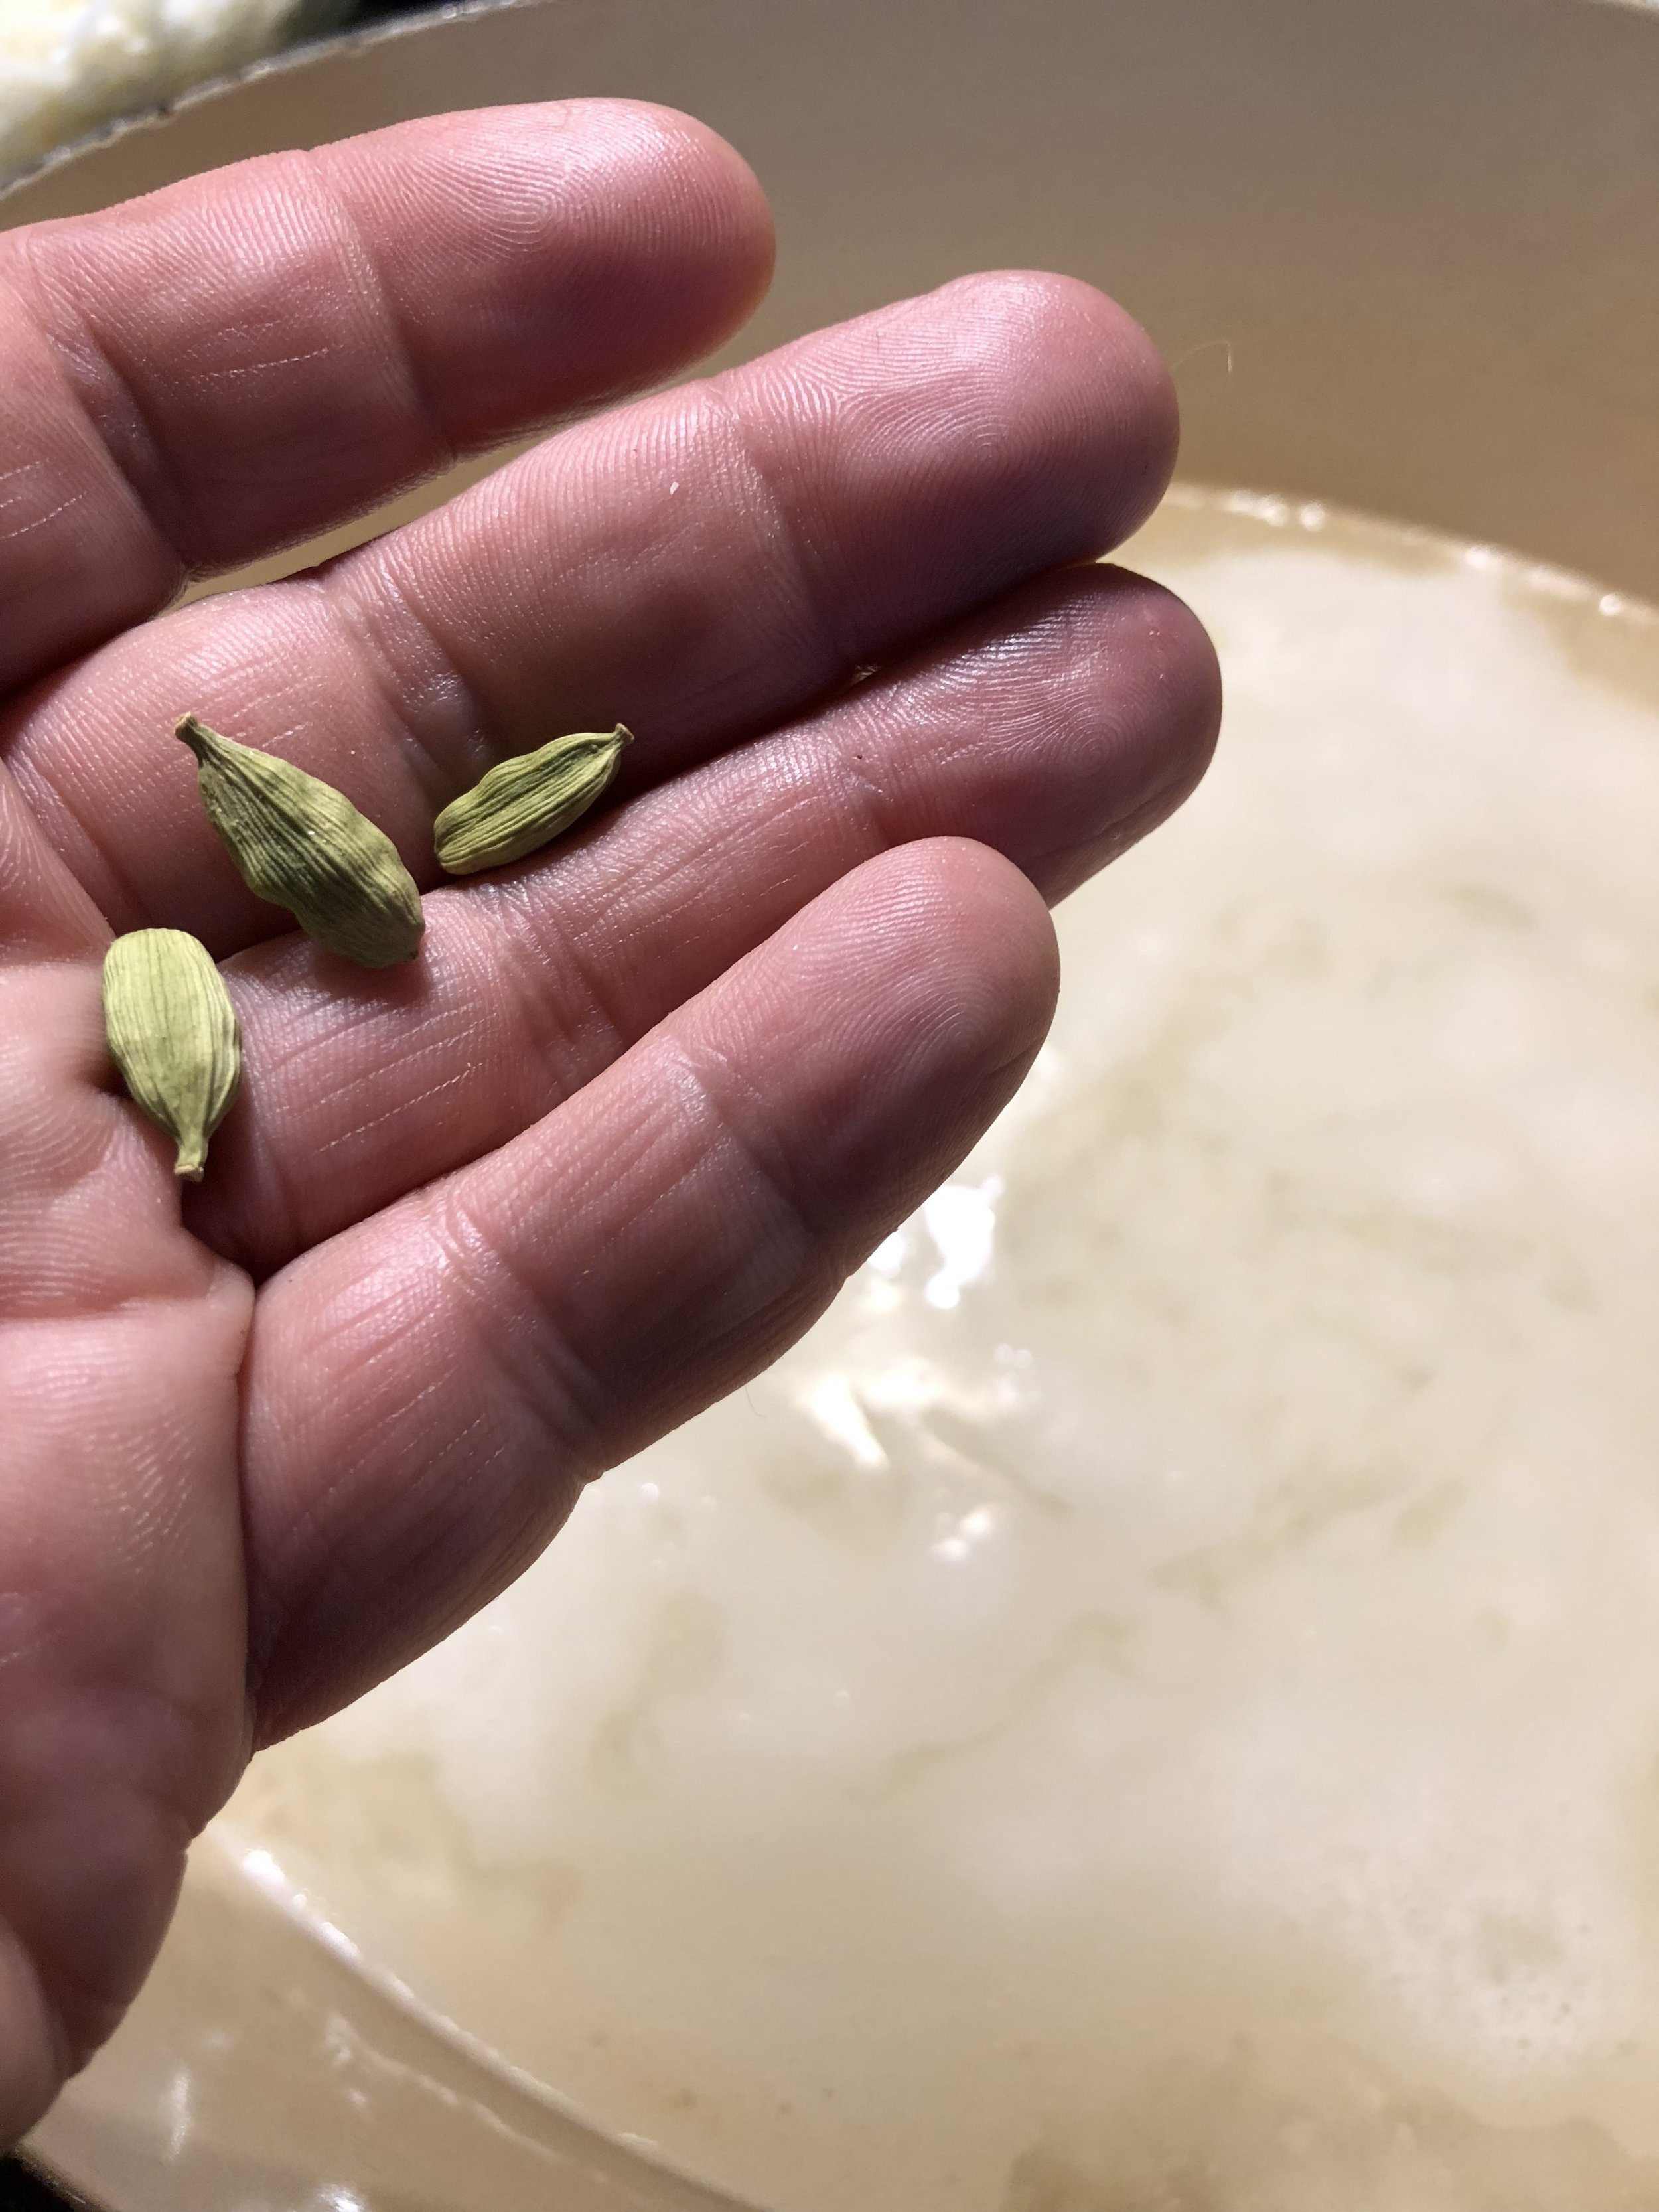 Cardamom pods. The green things... not my chubby fingers.